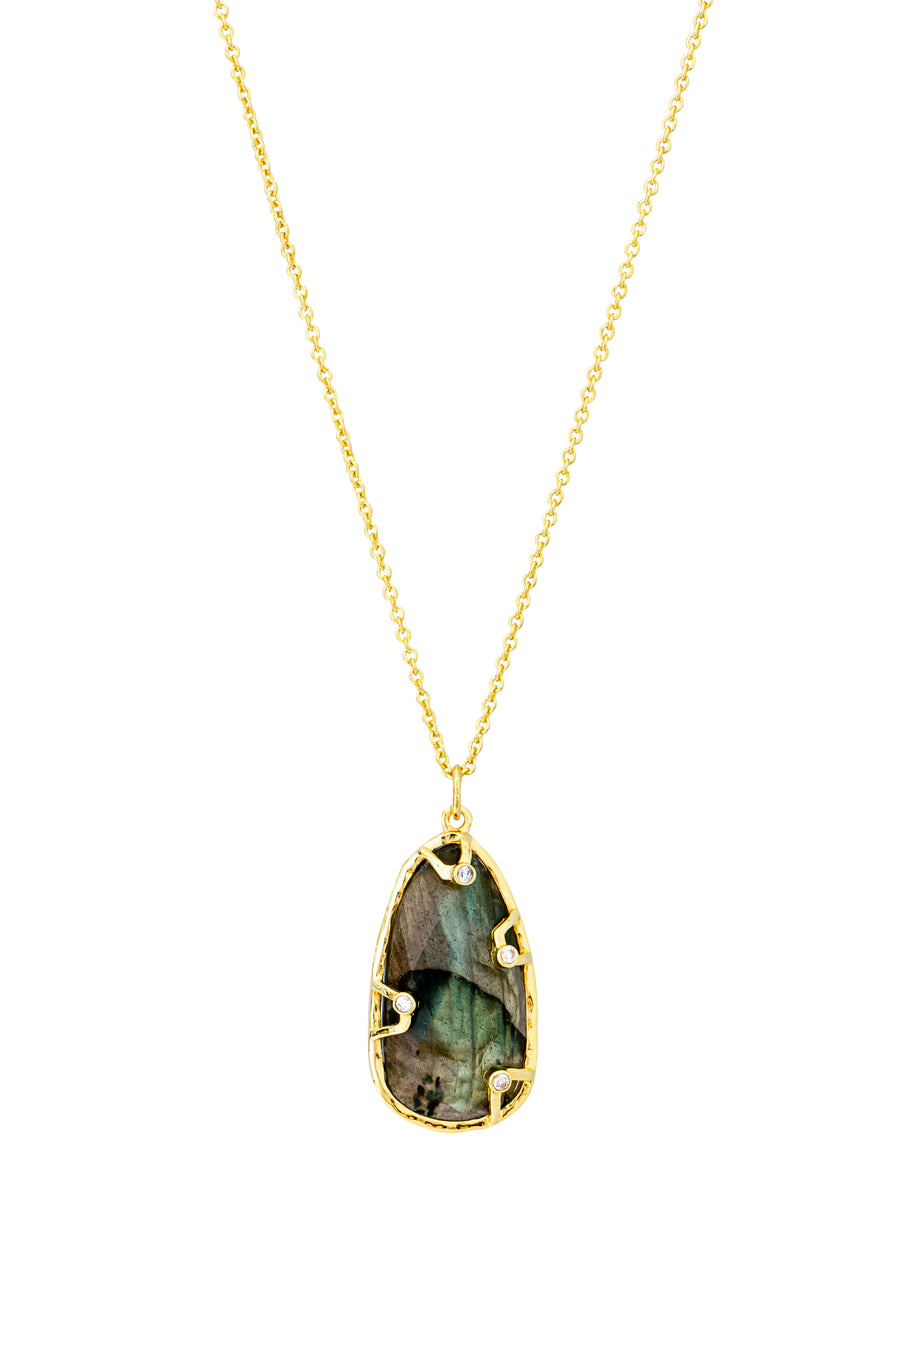 16k Gold Plate Labradorite and CZ Necklace (813200)